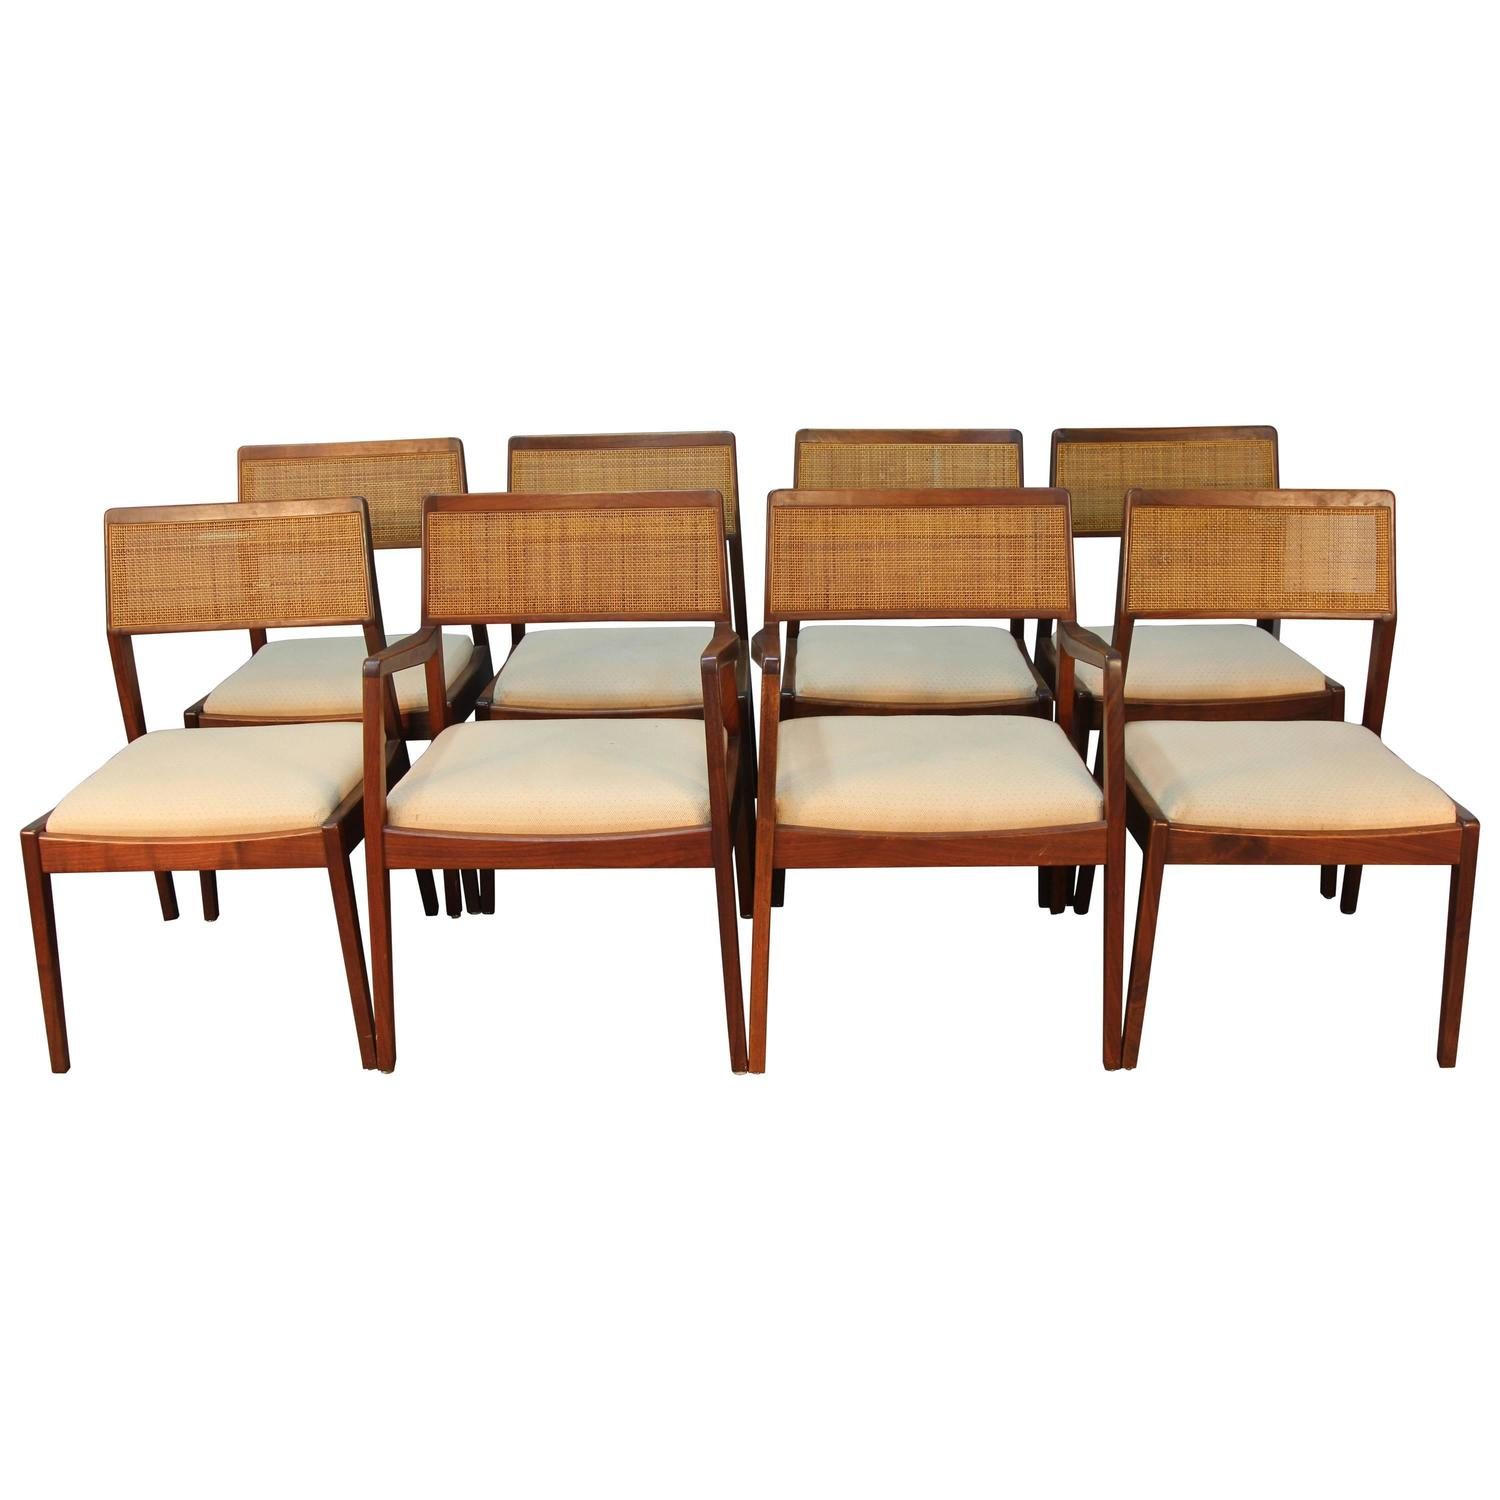 Set of eight jens risom dining chairs at 1stdibs - Jens risom dining chairs ...